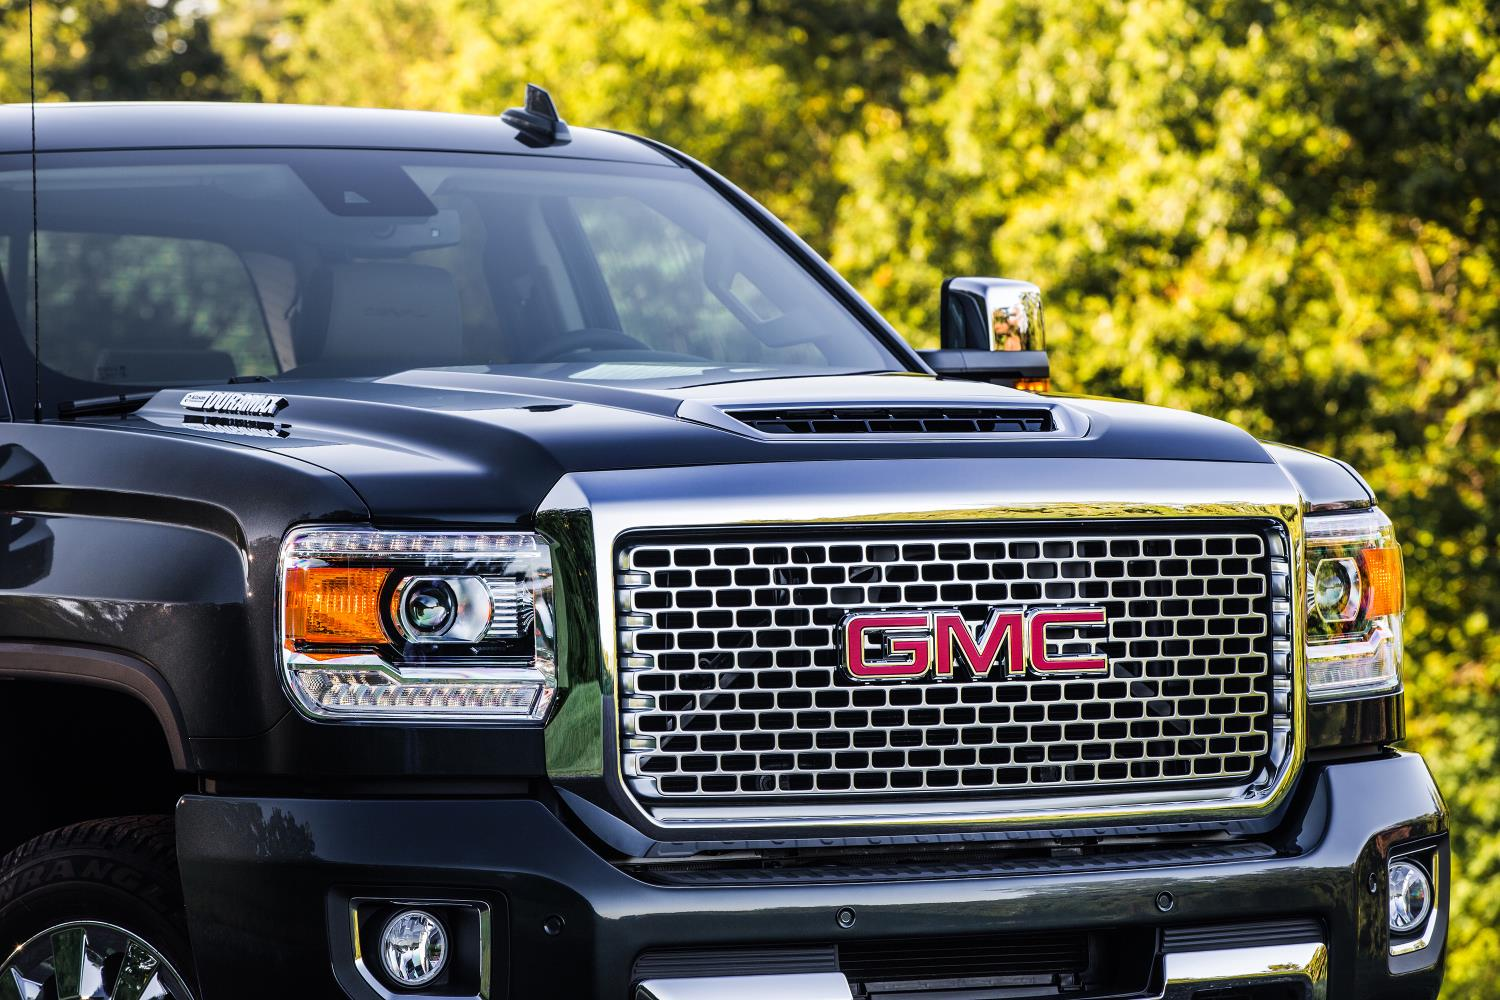 the motoring world usa gmc upgrades the duramax v8 turbo diesel giving more power. Black Bedroom Furniture Sets. Home Design Ideas